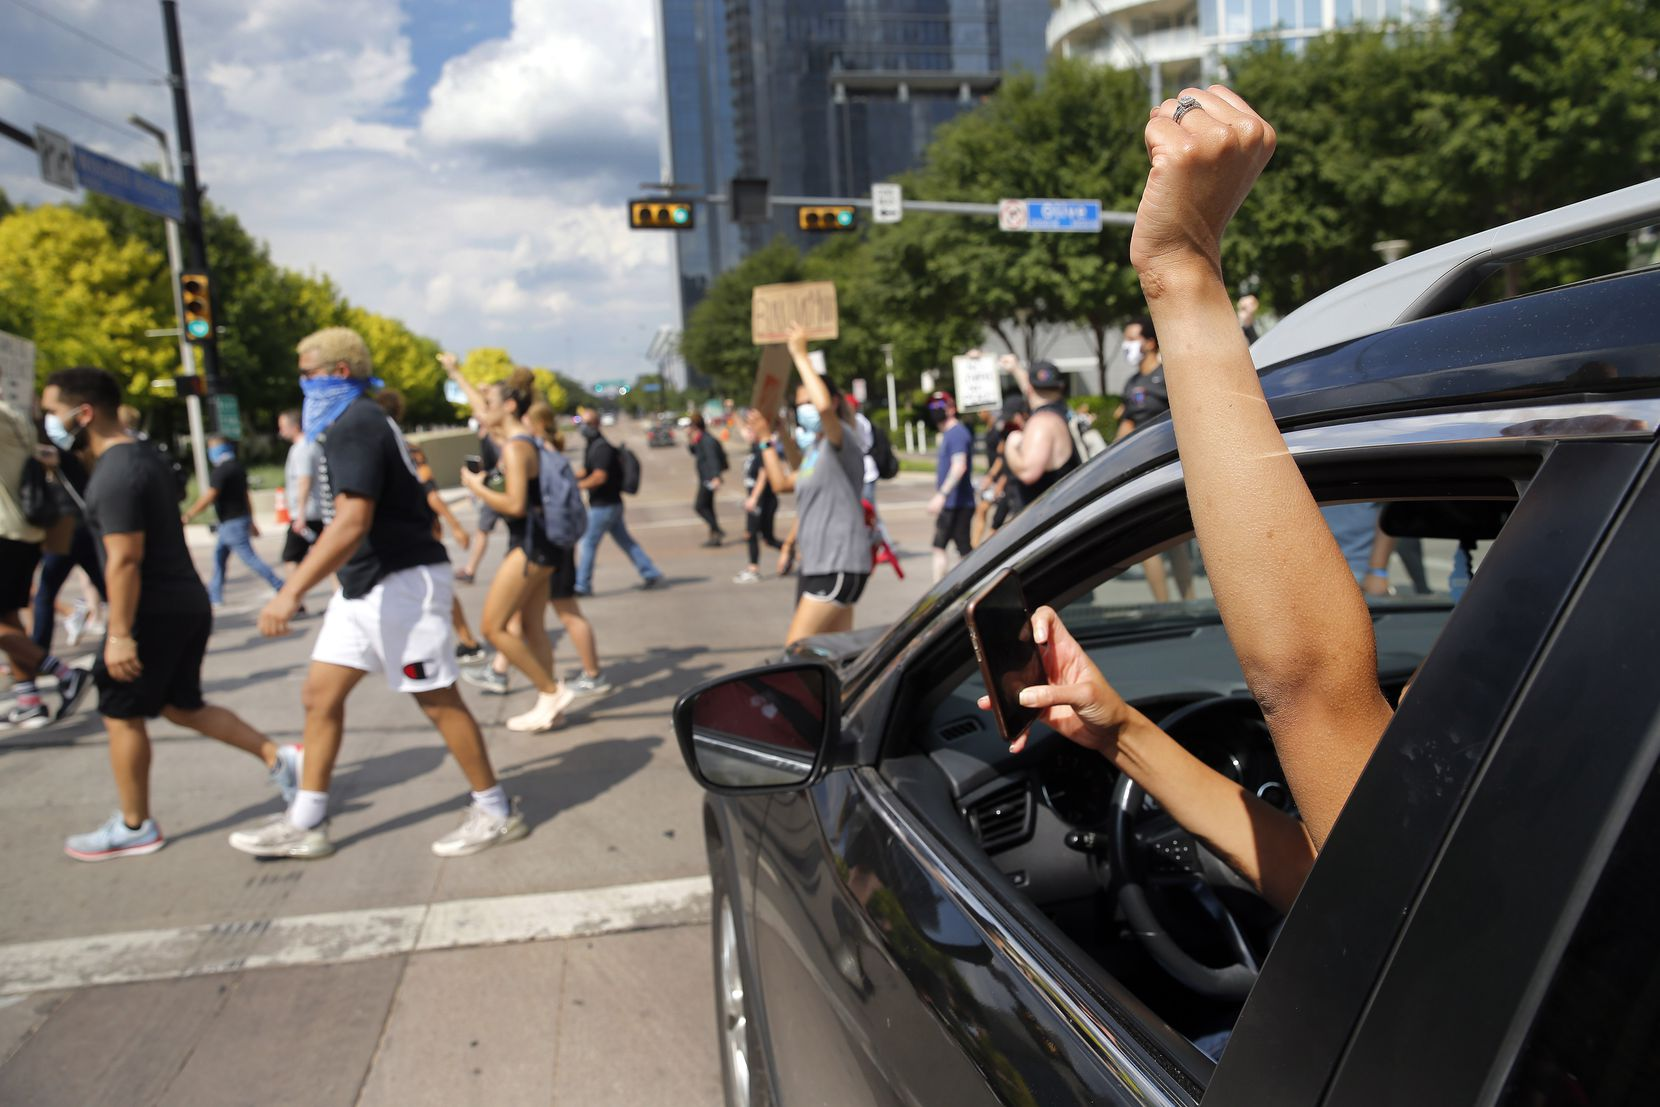 A supporter raises her first as protestors supporting Black Lives Matters march through Klyde Warren Park in downtown Dallas, Tuesday, June 2, 2020. They gathered to protest the in-custody death of George Floyd.